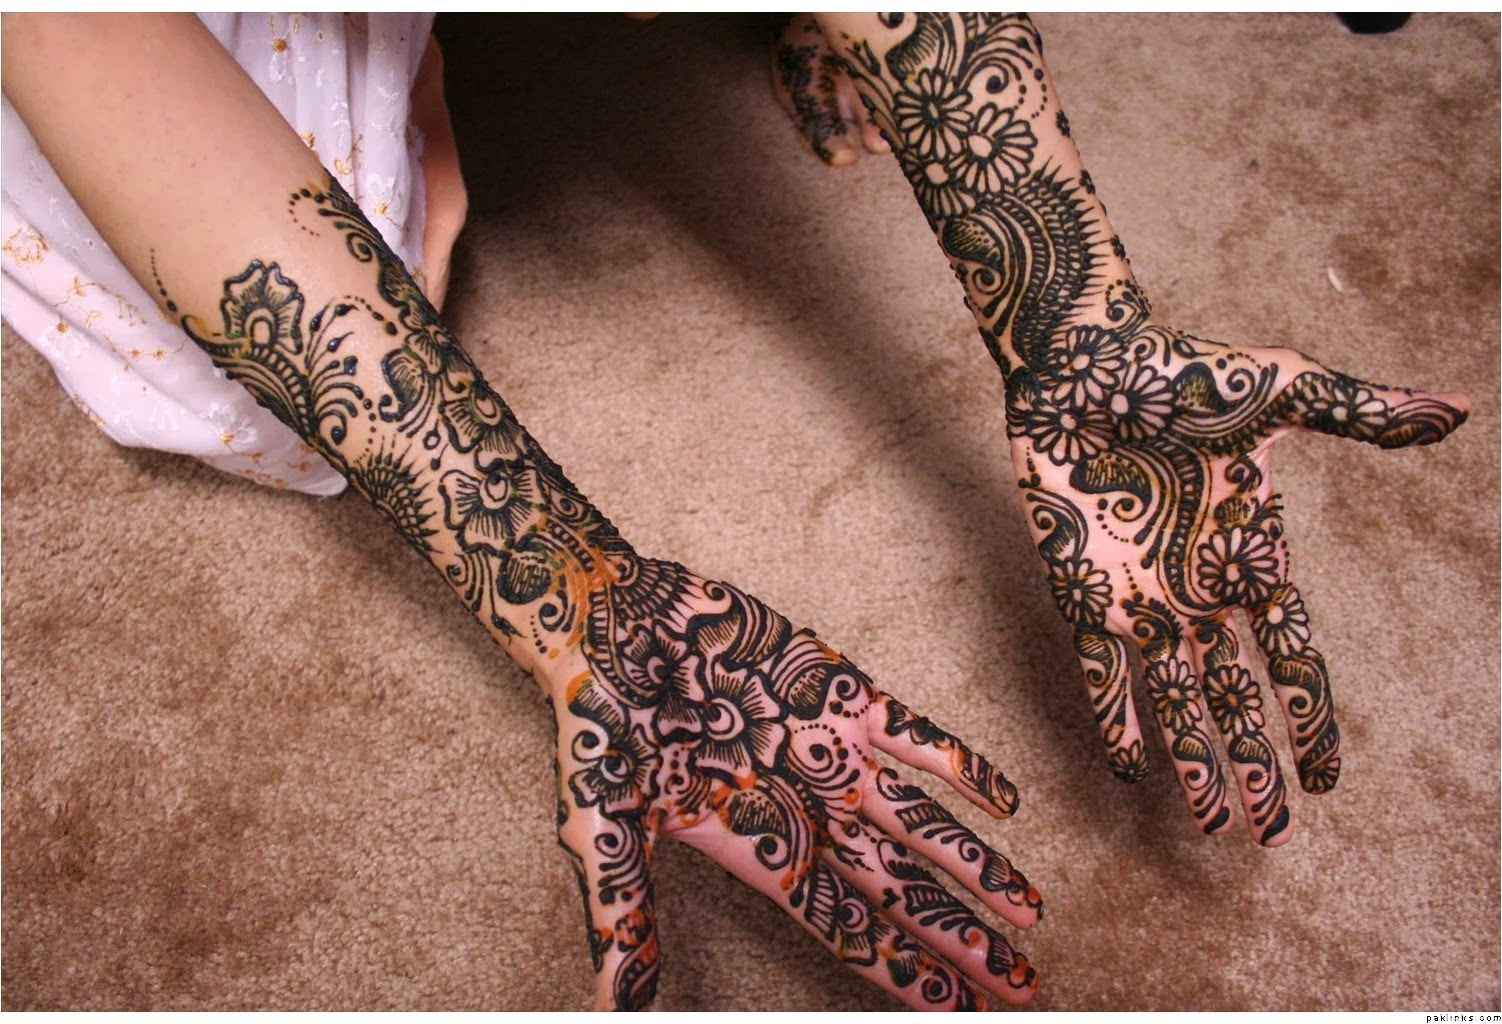 Stylish henna designs for hands new mehndi styles morewallpapers - Elegant Full Hand Henna Mehndi Design 200 Mehndi Design Latest Indian